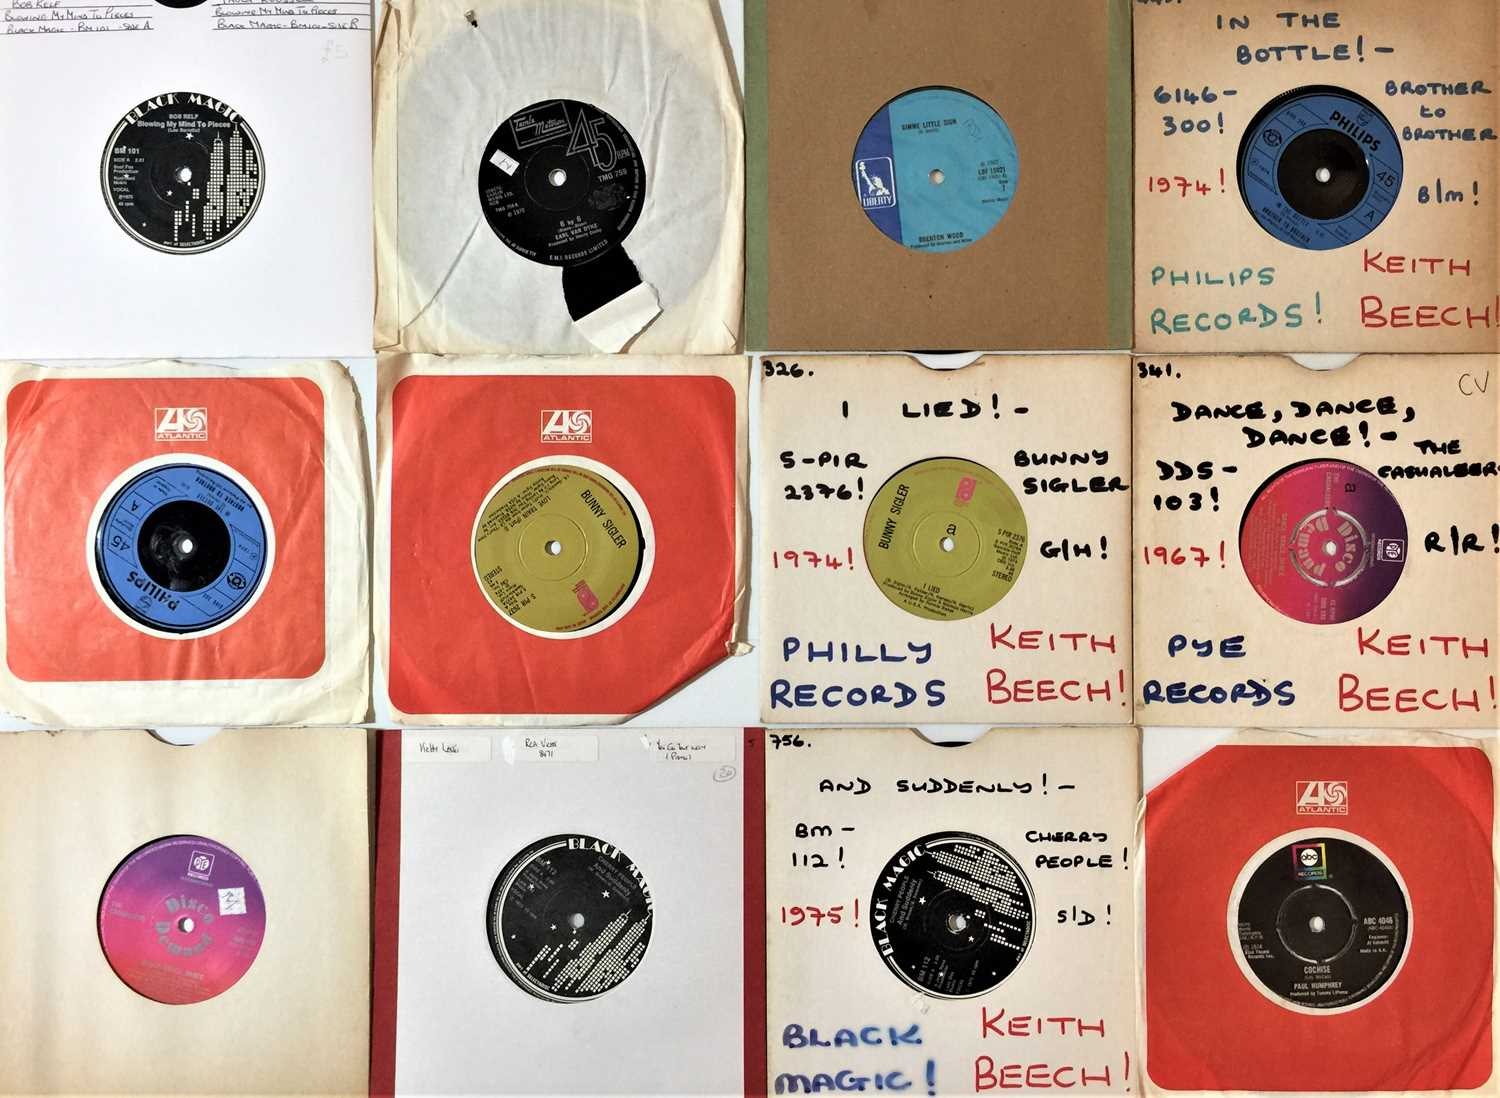 """60s/ 70s SOUL/ NORTHERN/ MOTOWN/ FUNK - 7"""" COLLECTION - Image 2 of 3"""